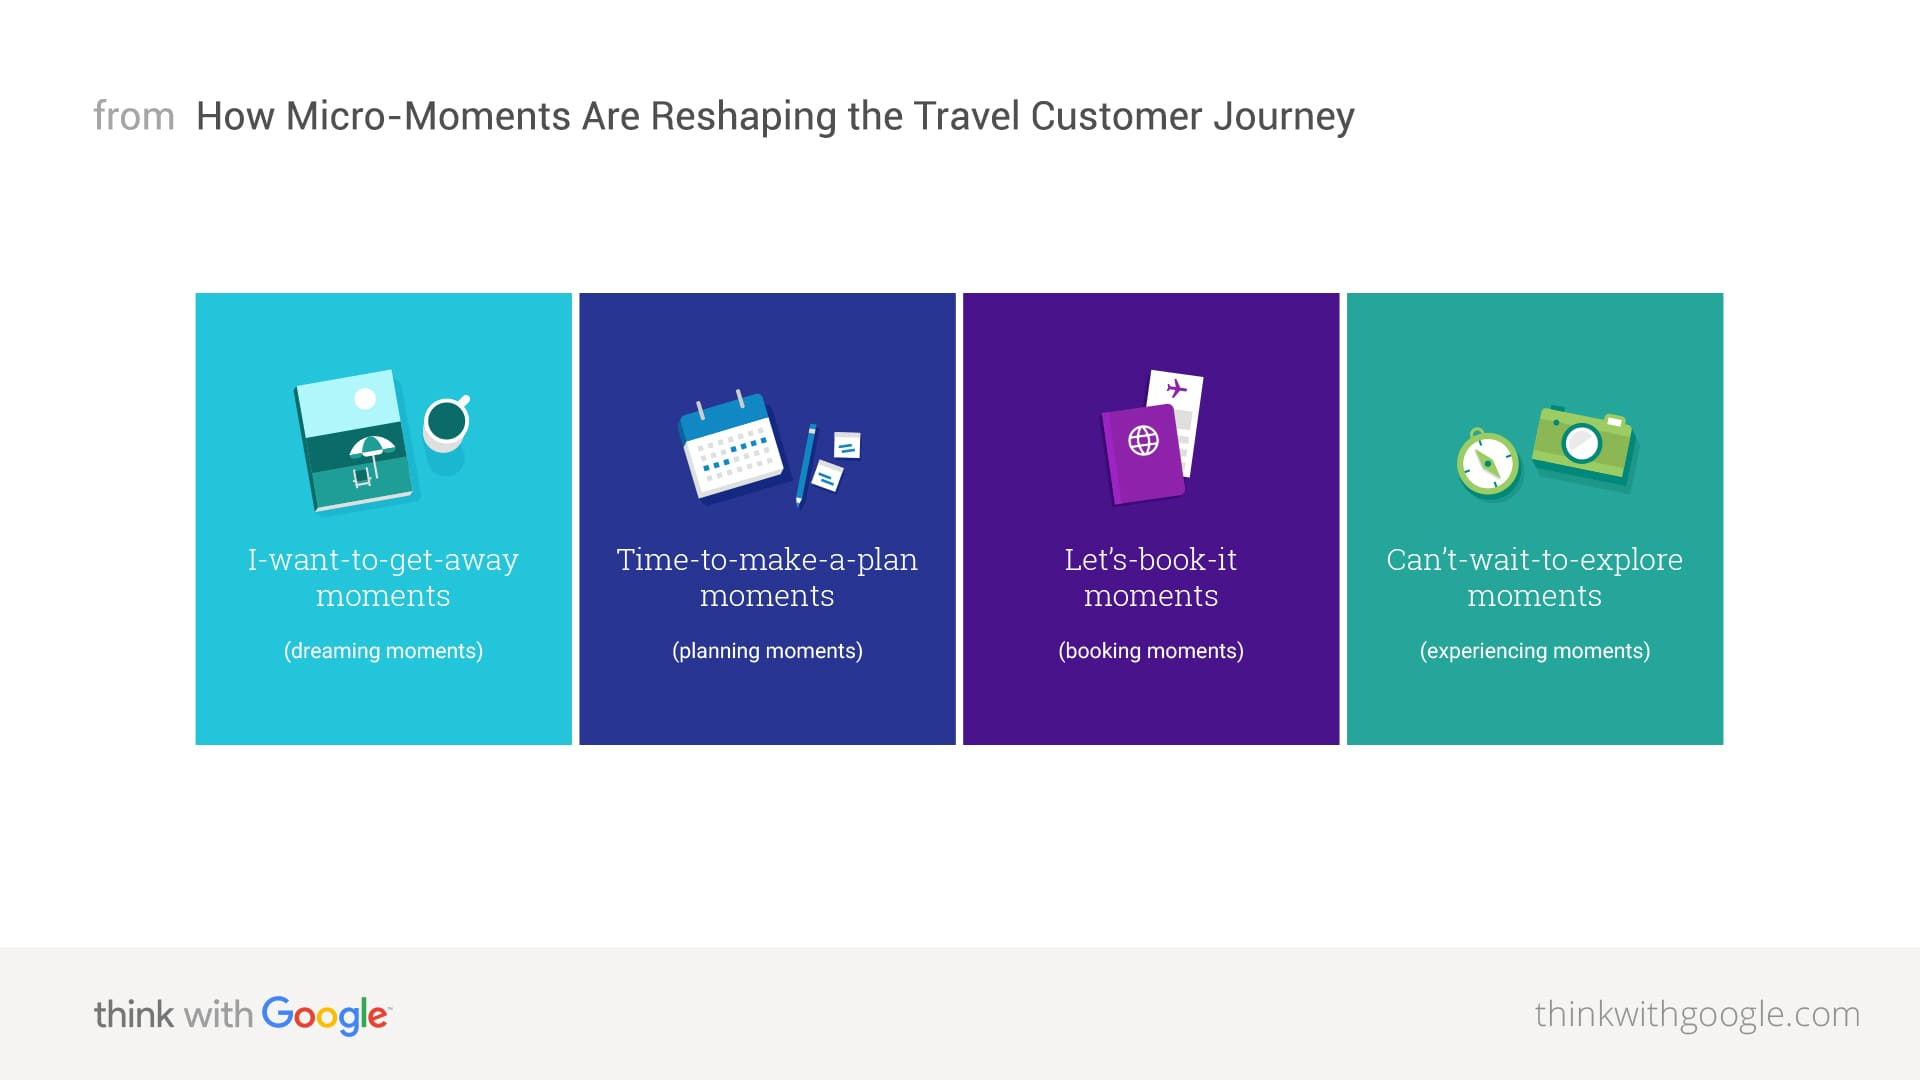 micro moments reshape the travel customer journey think with google